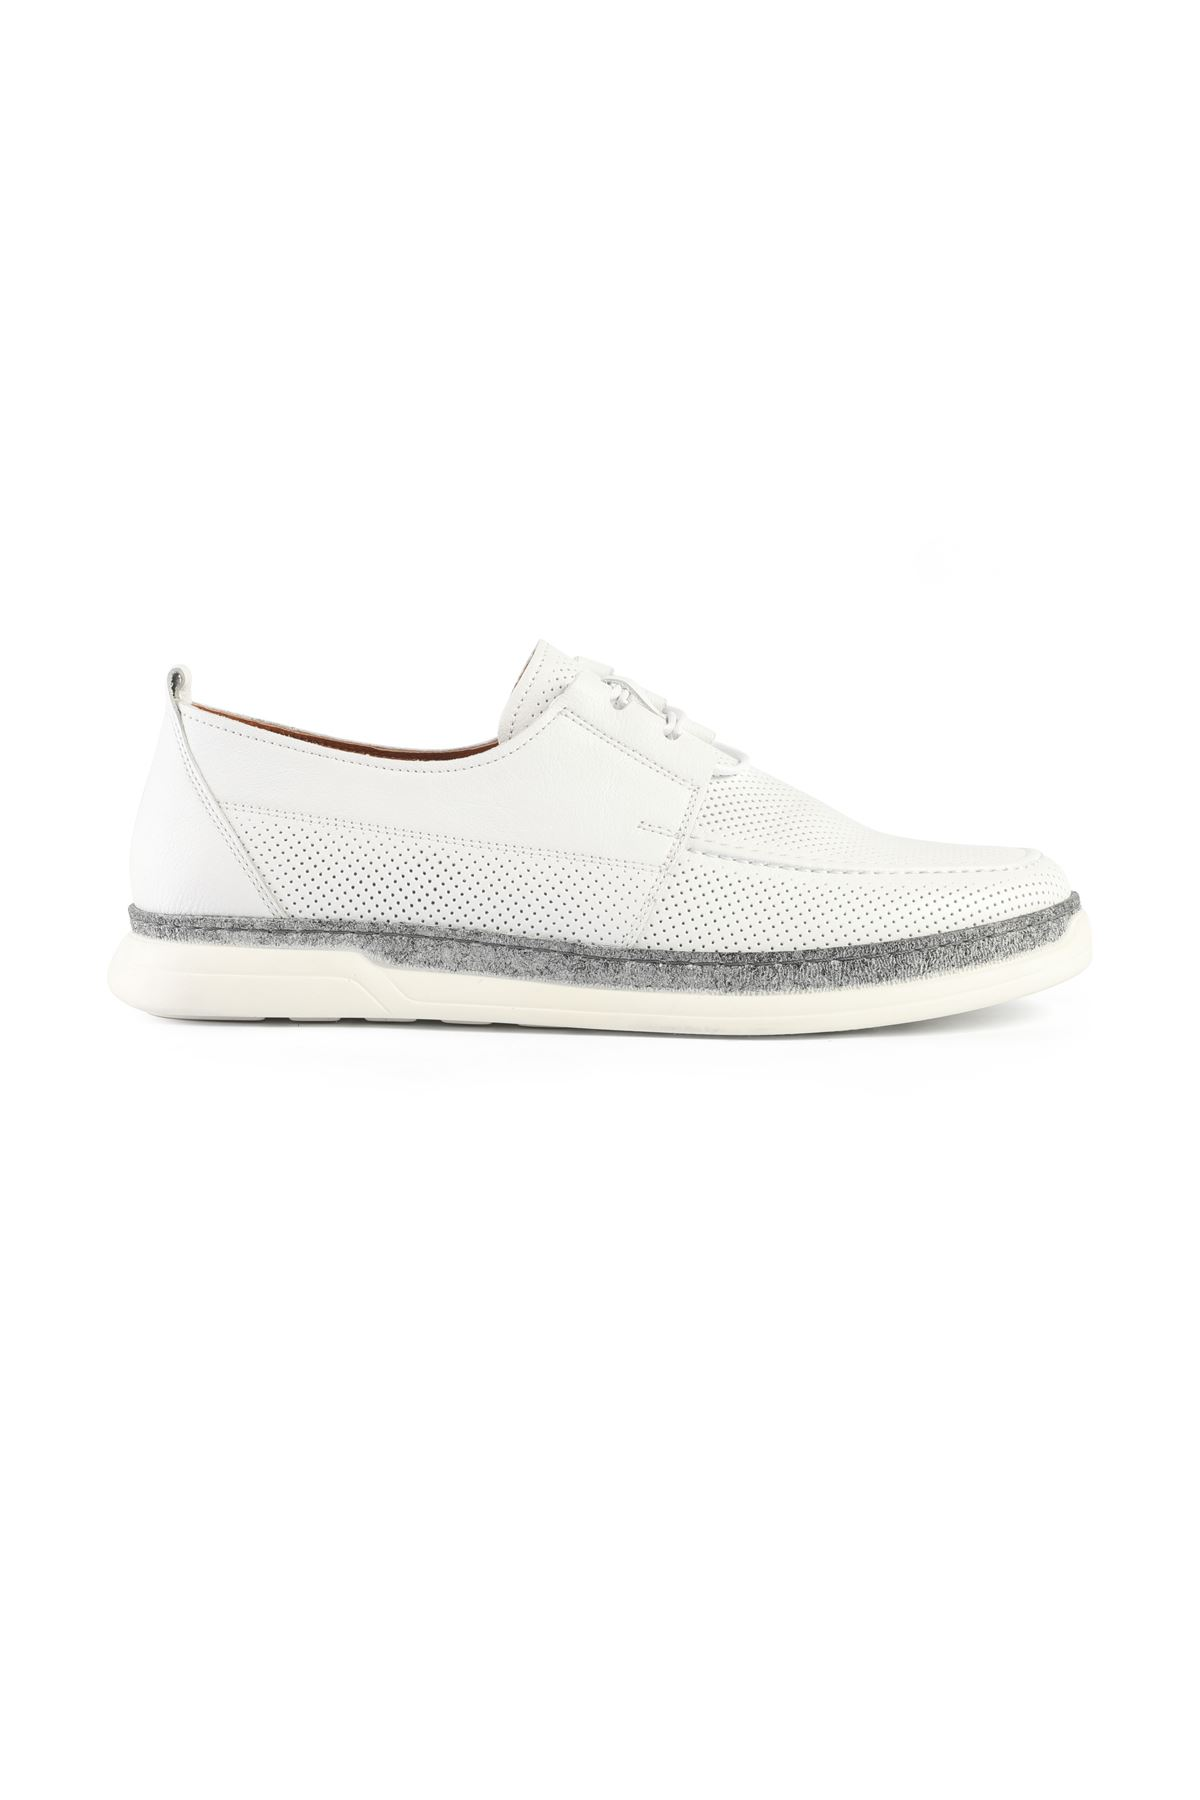 Libero L3418 White Loafer Shoes